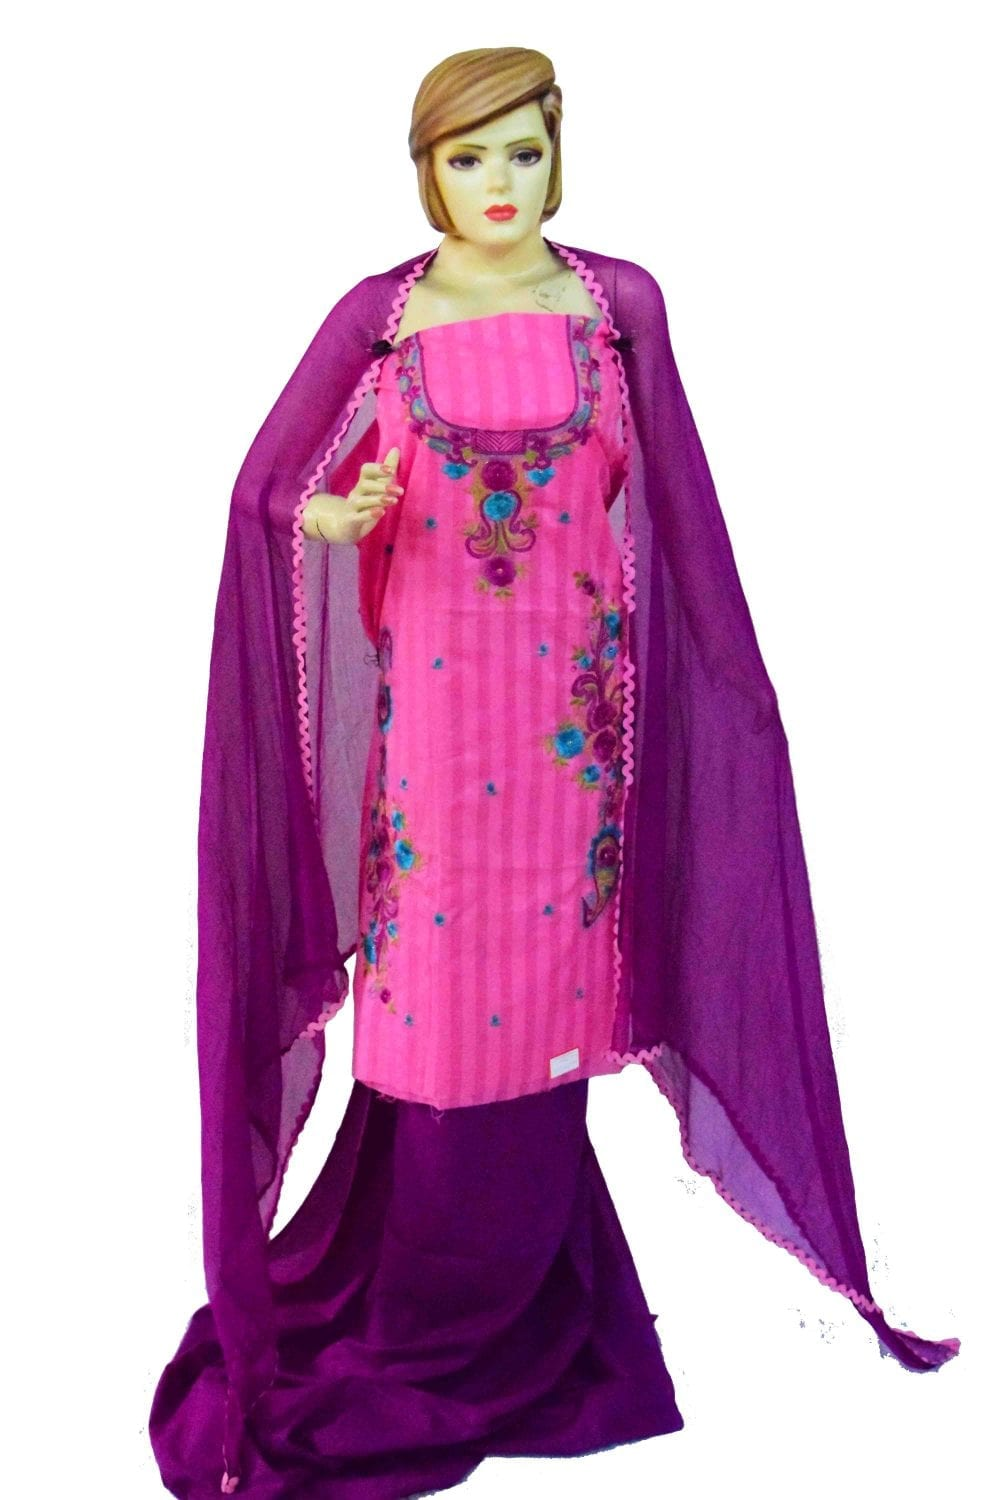 Designer Thread Embroidery 100% cotton Salwar Suit CHIFFON Dupatta RM332 1